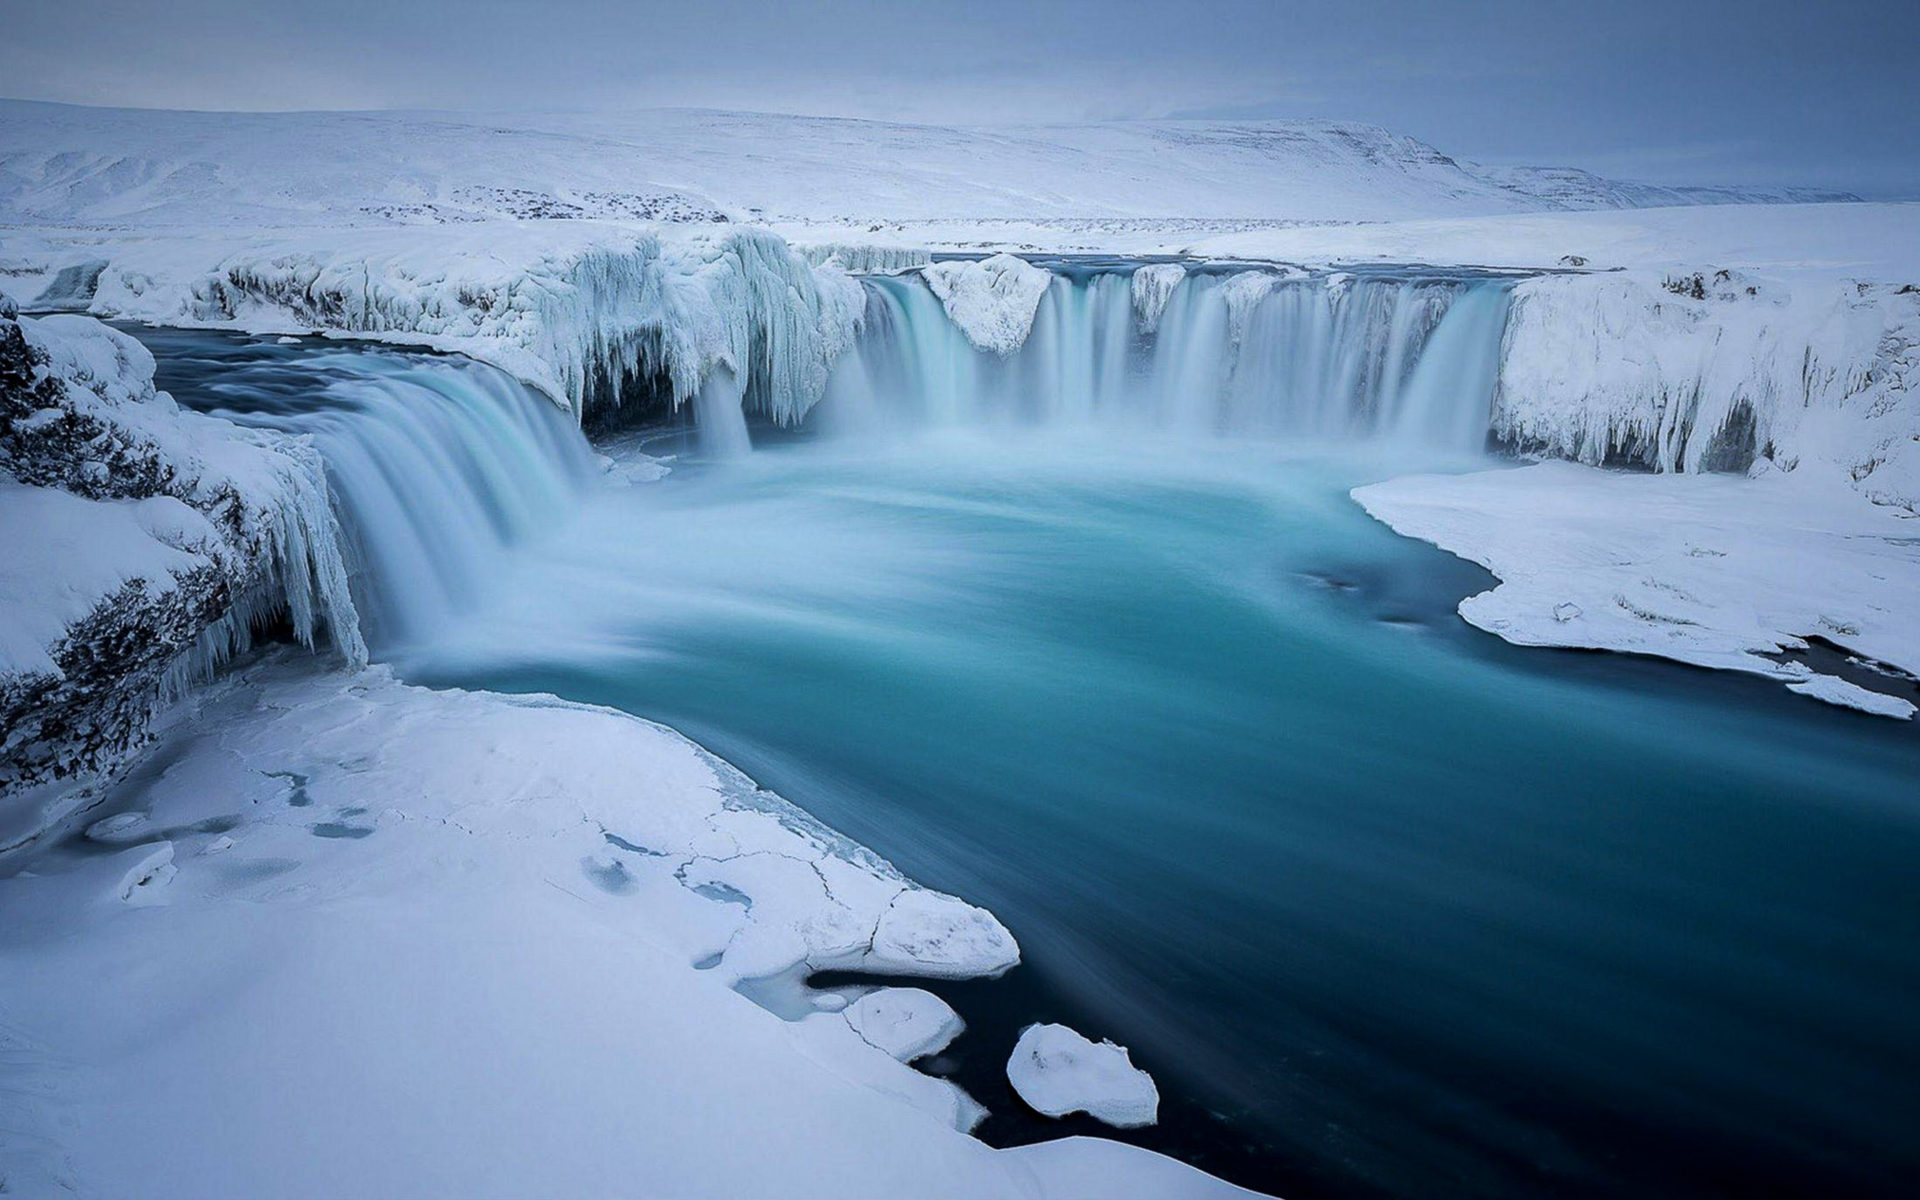 Angel Falls Wallpaper Hd Ice Go 240 Afoss Waterfall In The Winter Snow Ice Iceland